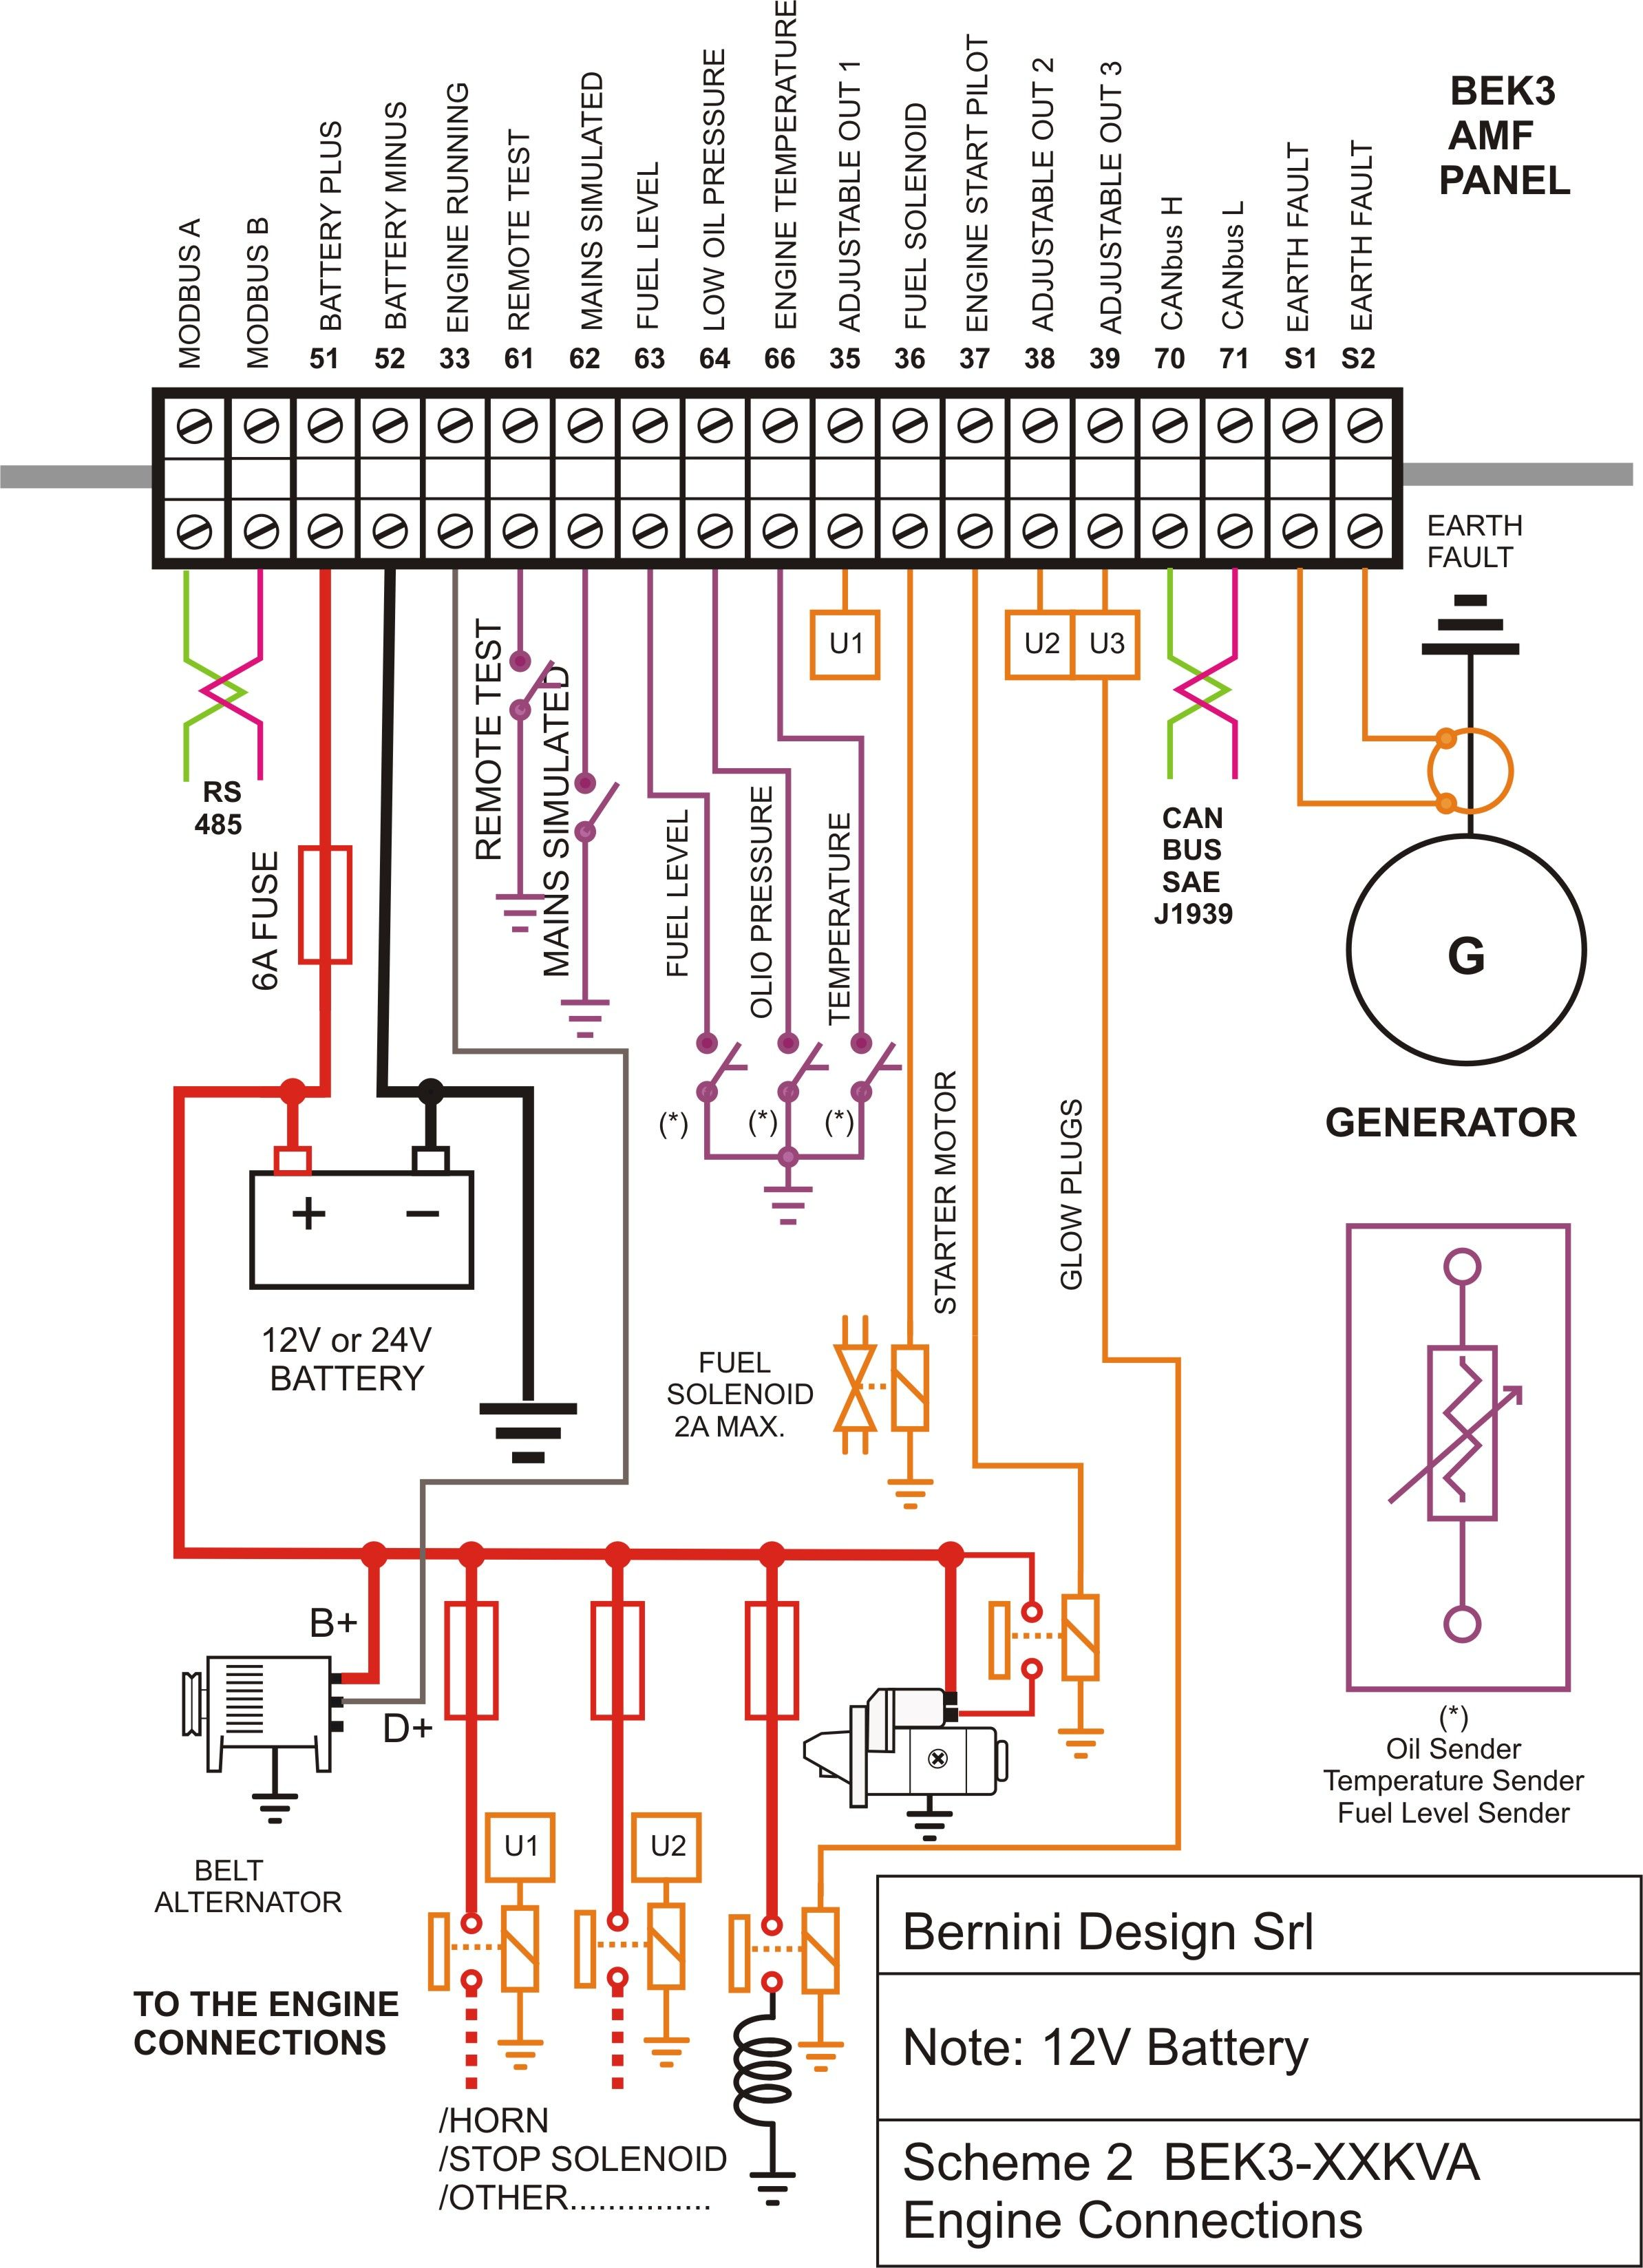 sel generator control panel wiring diagram Engine Connections ... on class 1 division diagram, dirt and plant diagram, ul 924 transfer relay, ul 1008 transfer switch wiring, ul 924 bypass relay, conduit connection diagram, sign emergency light installation diagram,